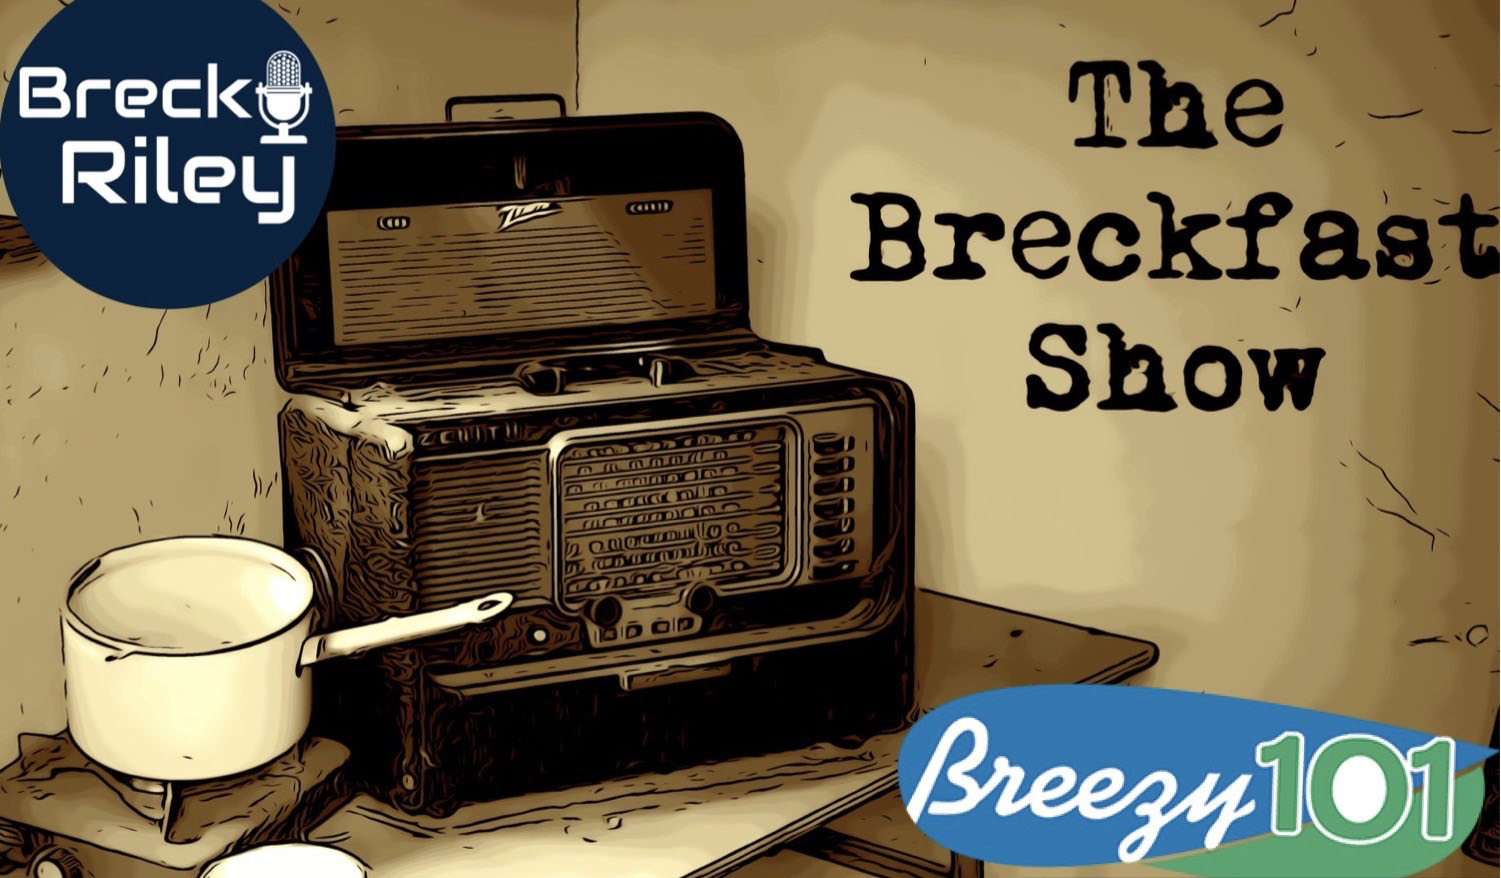 https://www.breezynews.com/onepage/the-breckfast-show